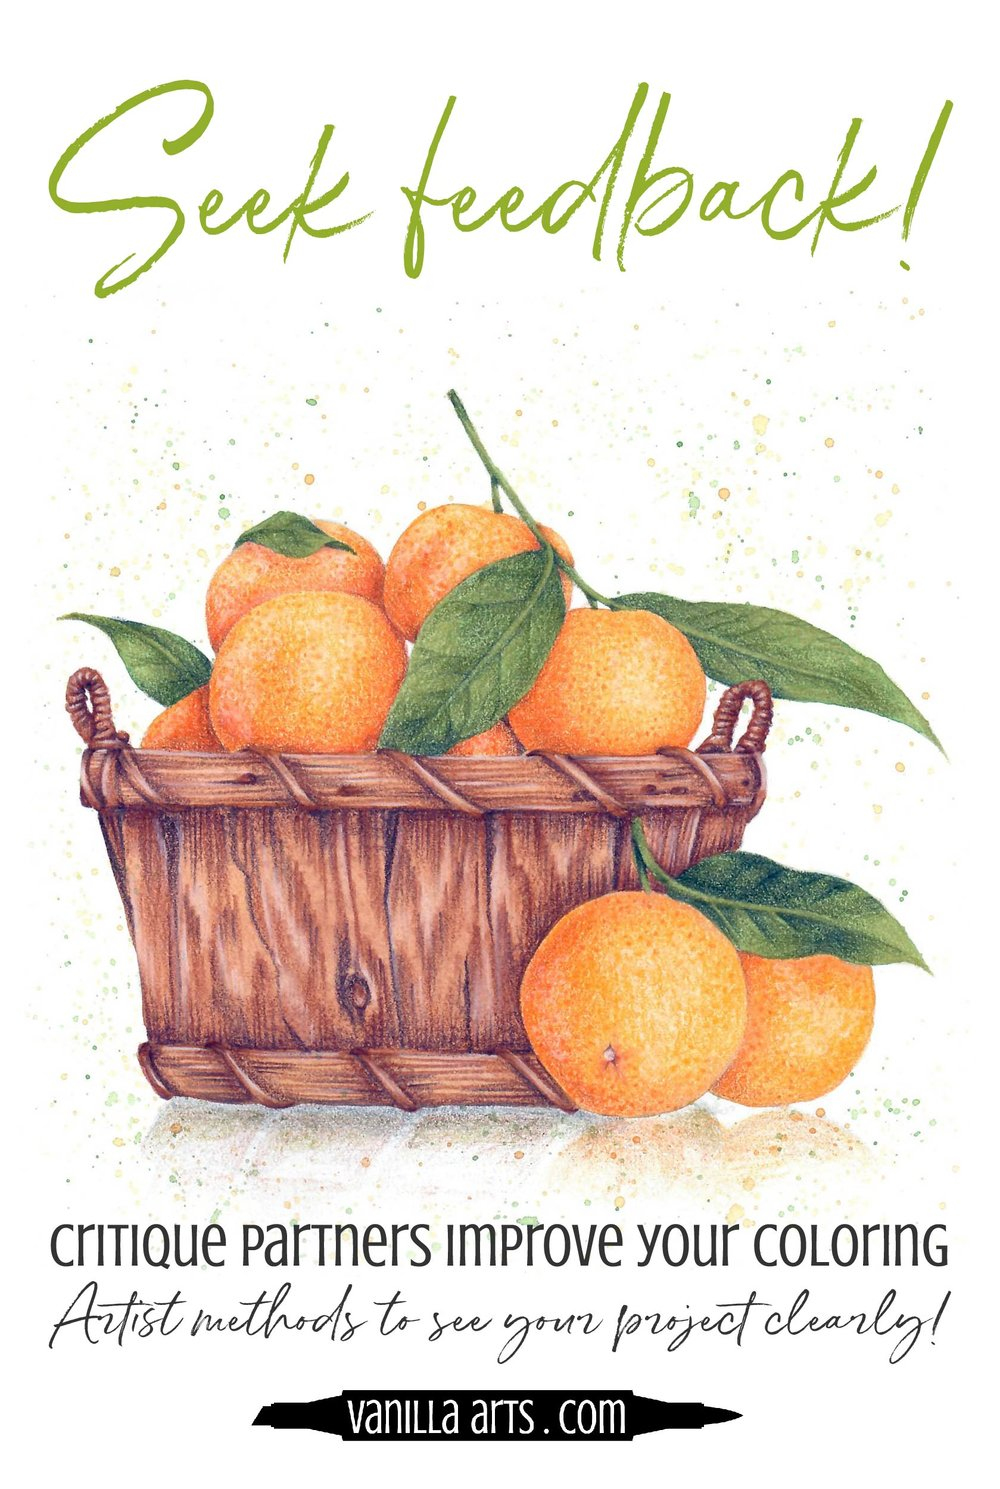 Honest feedback helps you improve your coloring but also encourages you to repeat what you do well. Learn artist's methods to see your Copic Marker and colored pencil projects clearly. | VanillaArts.com | #copic #coloredpencil #adultcoloring #realism